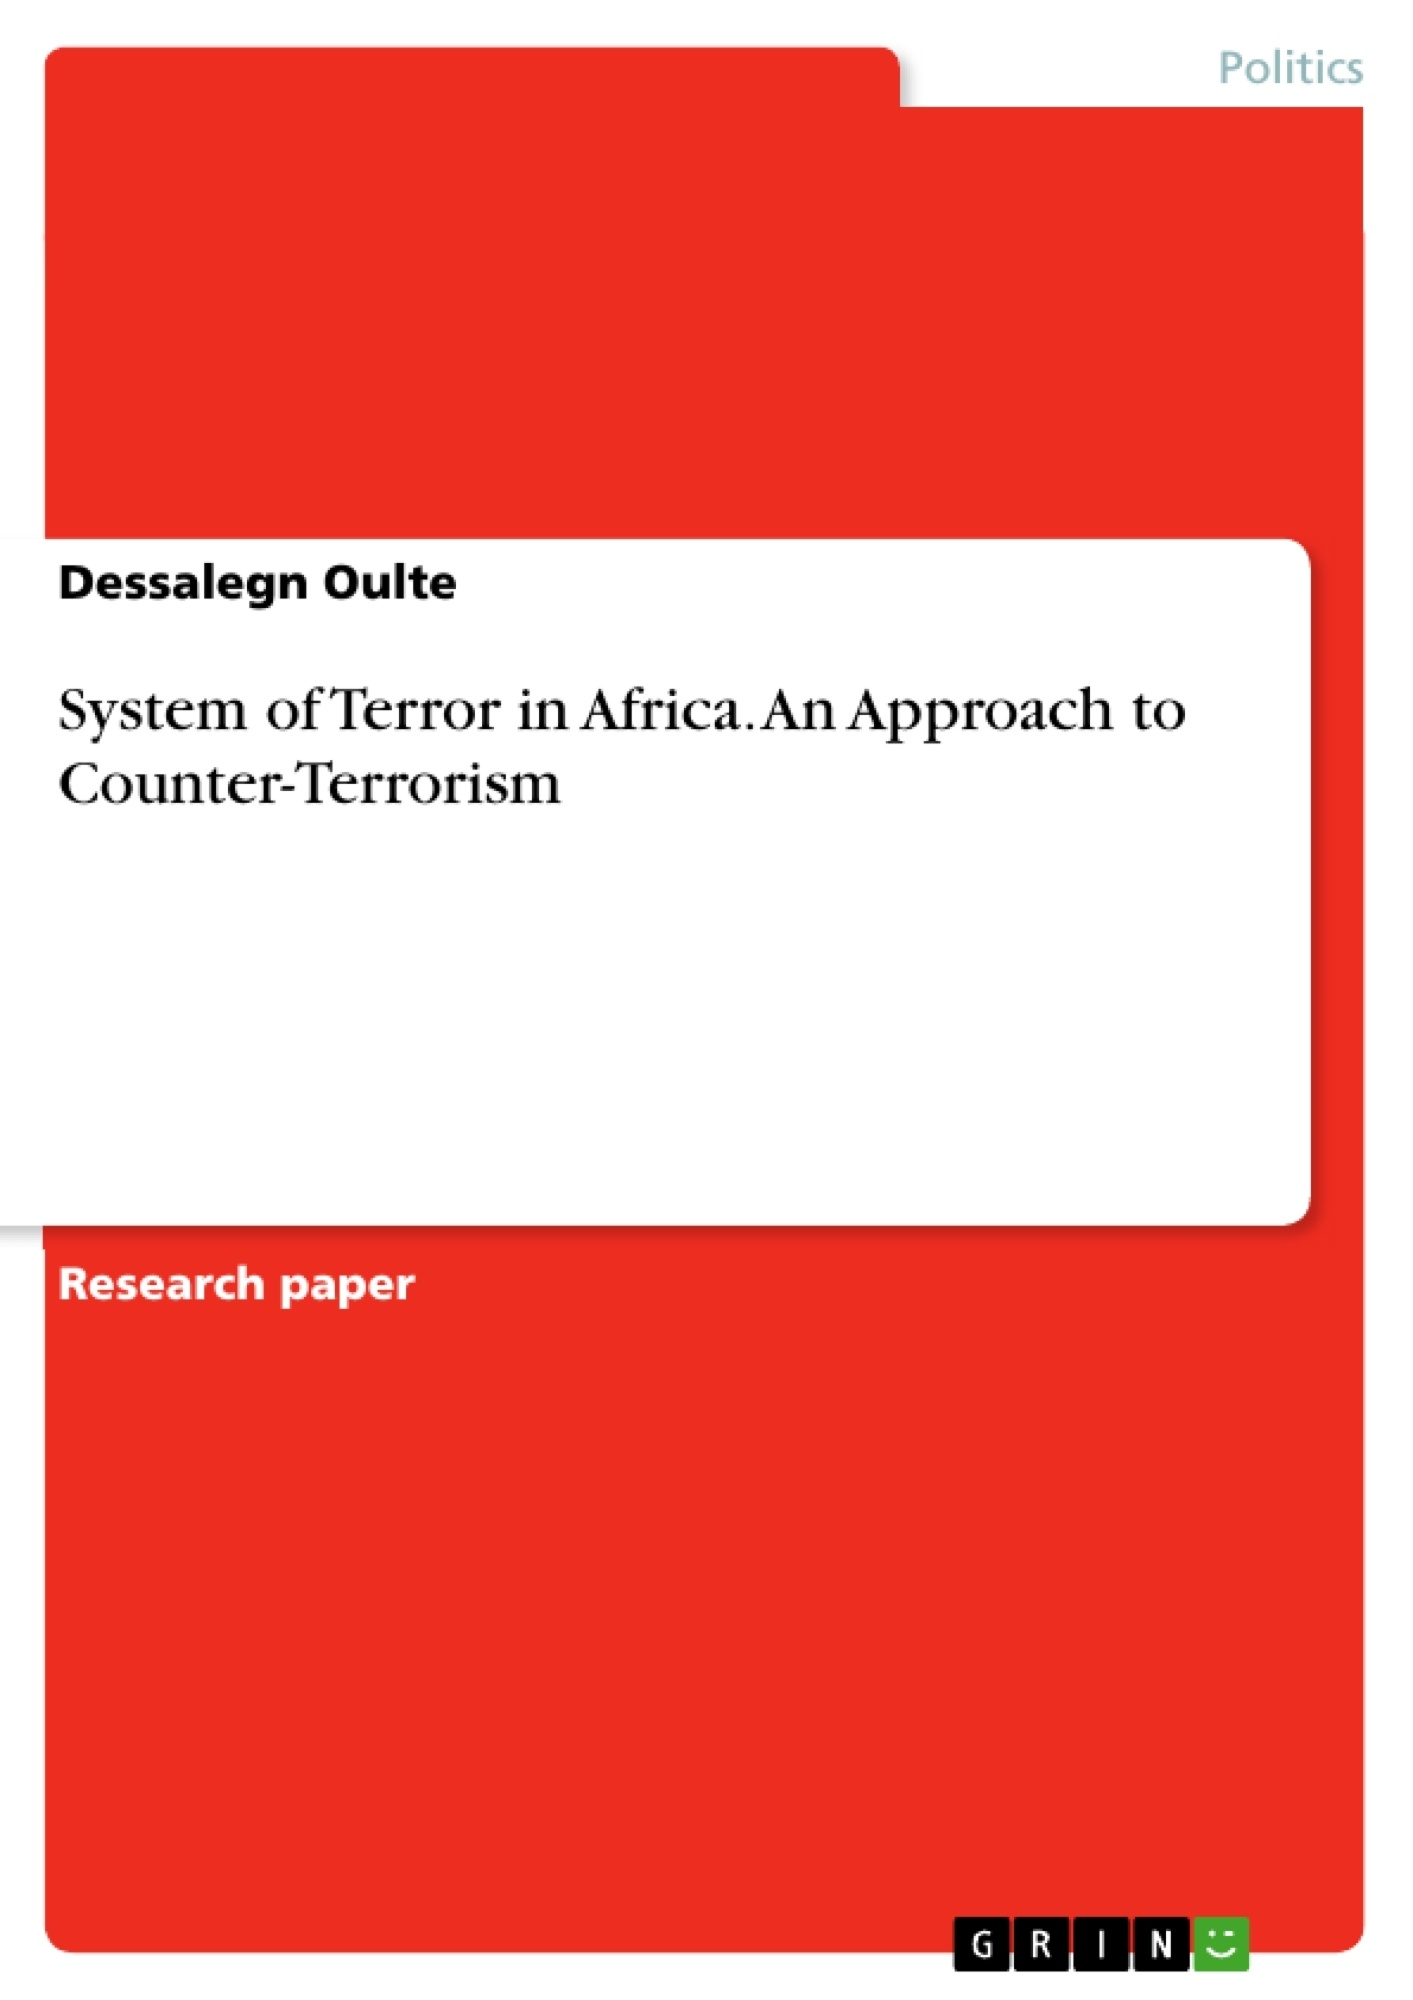 Title: System of Terror in Africa. An Approach to Counter-Terrorism